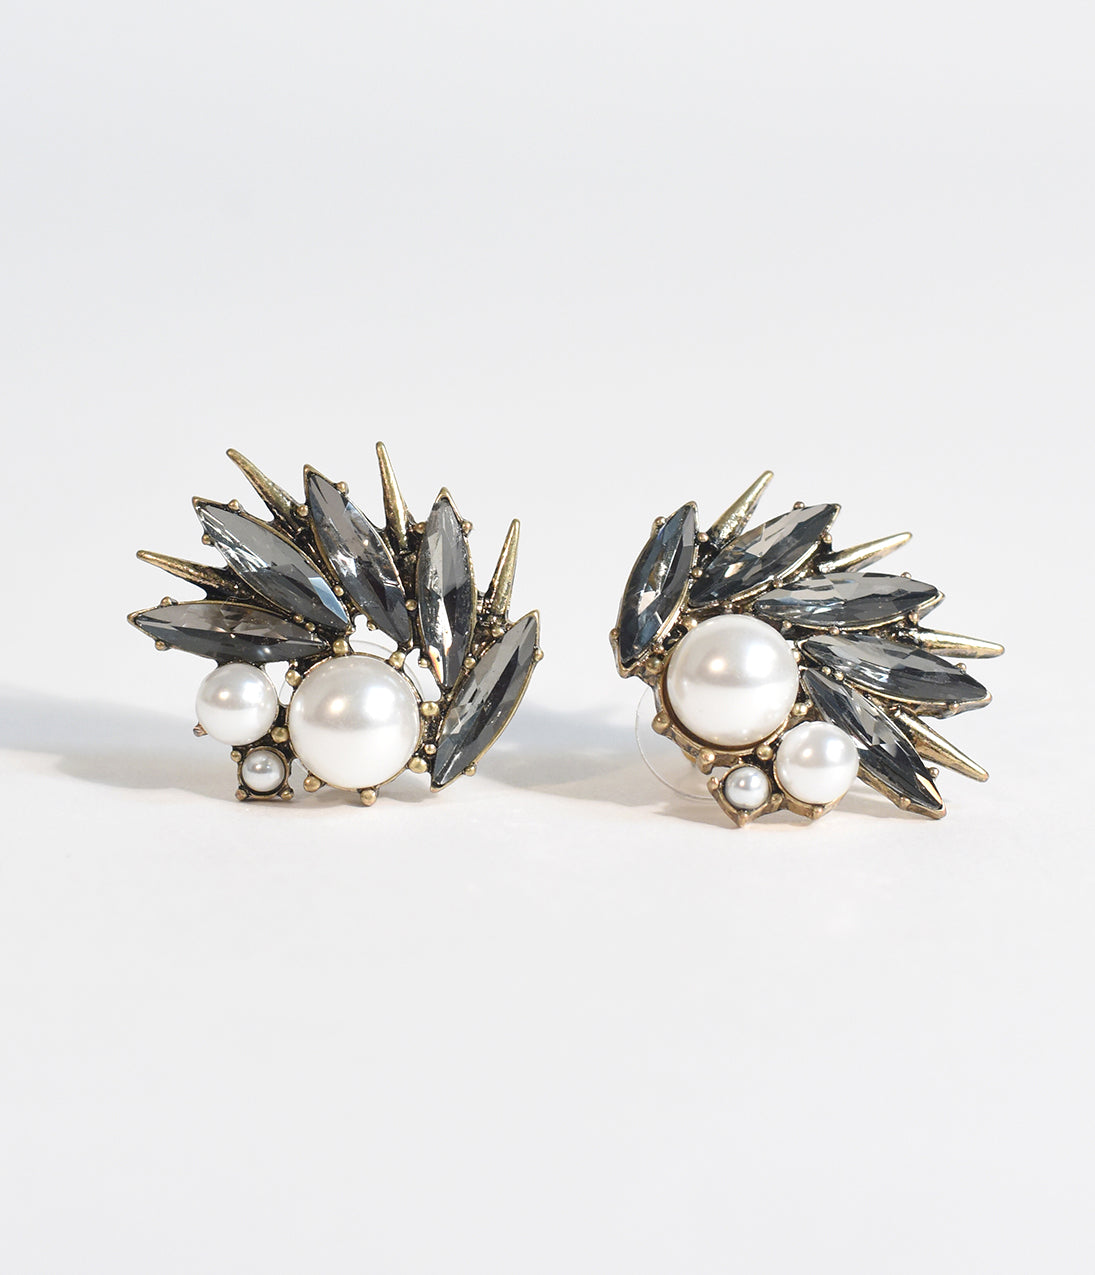 1930s Jewelry | Art Deco Style Jewelry Deco Style Pearl  Dark Gem Thistle Stud Earrings $22.00 AT vintagedancer.com